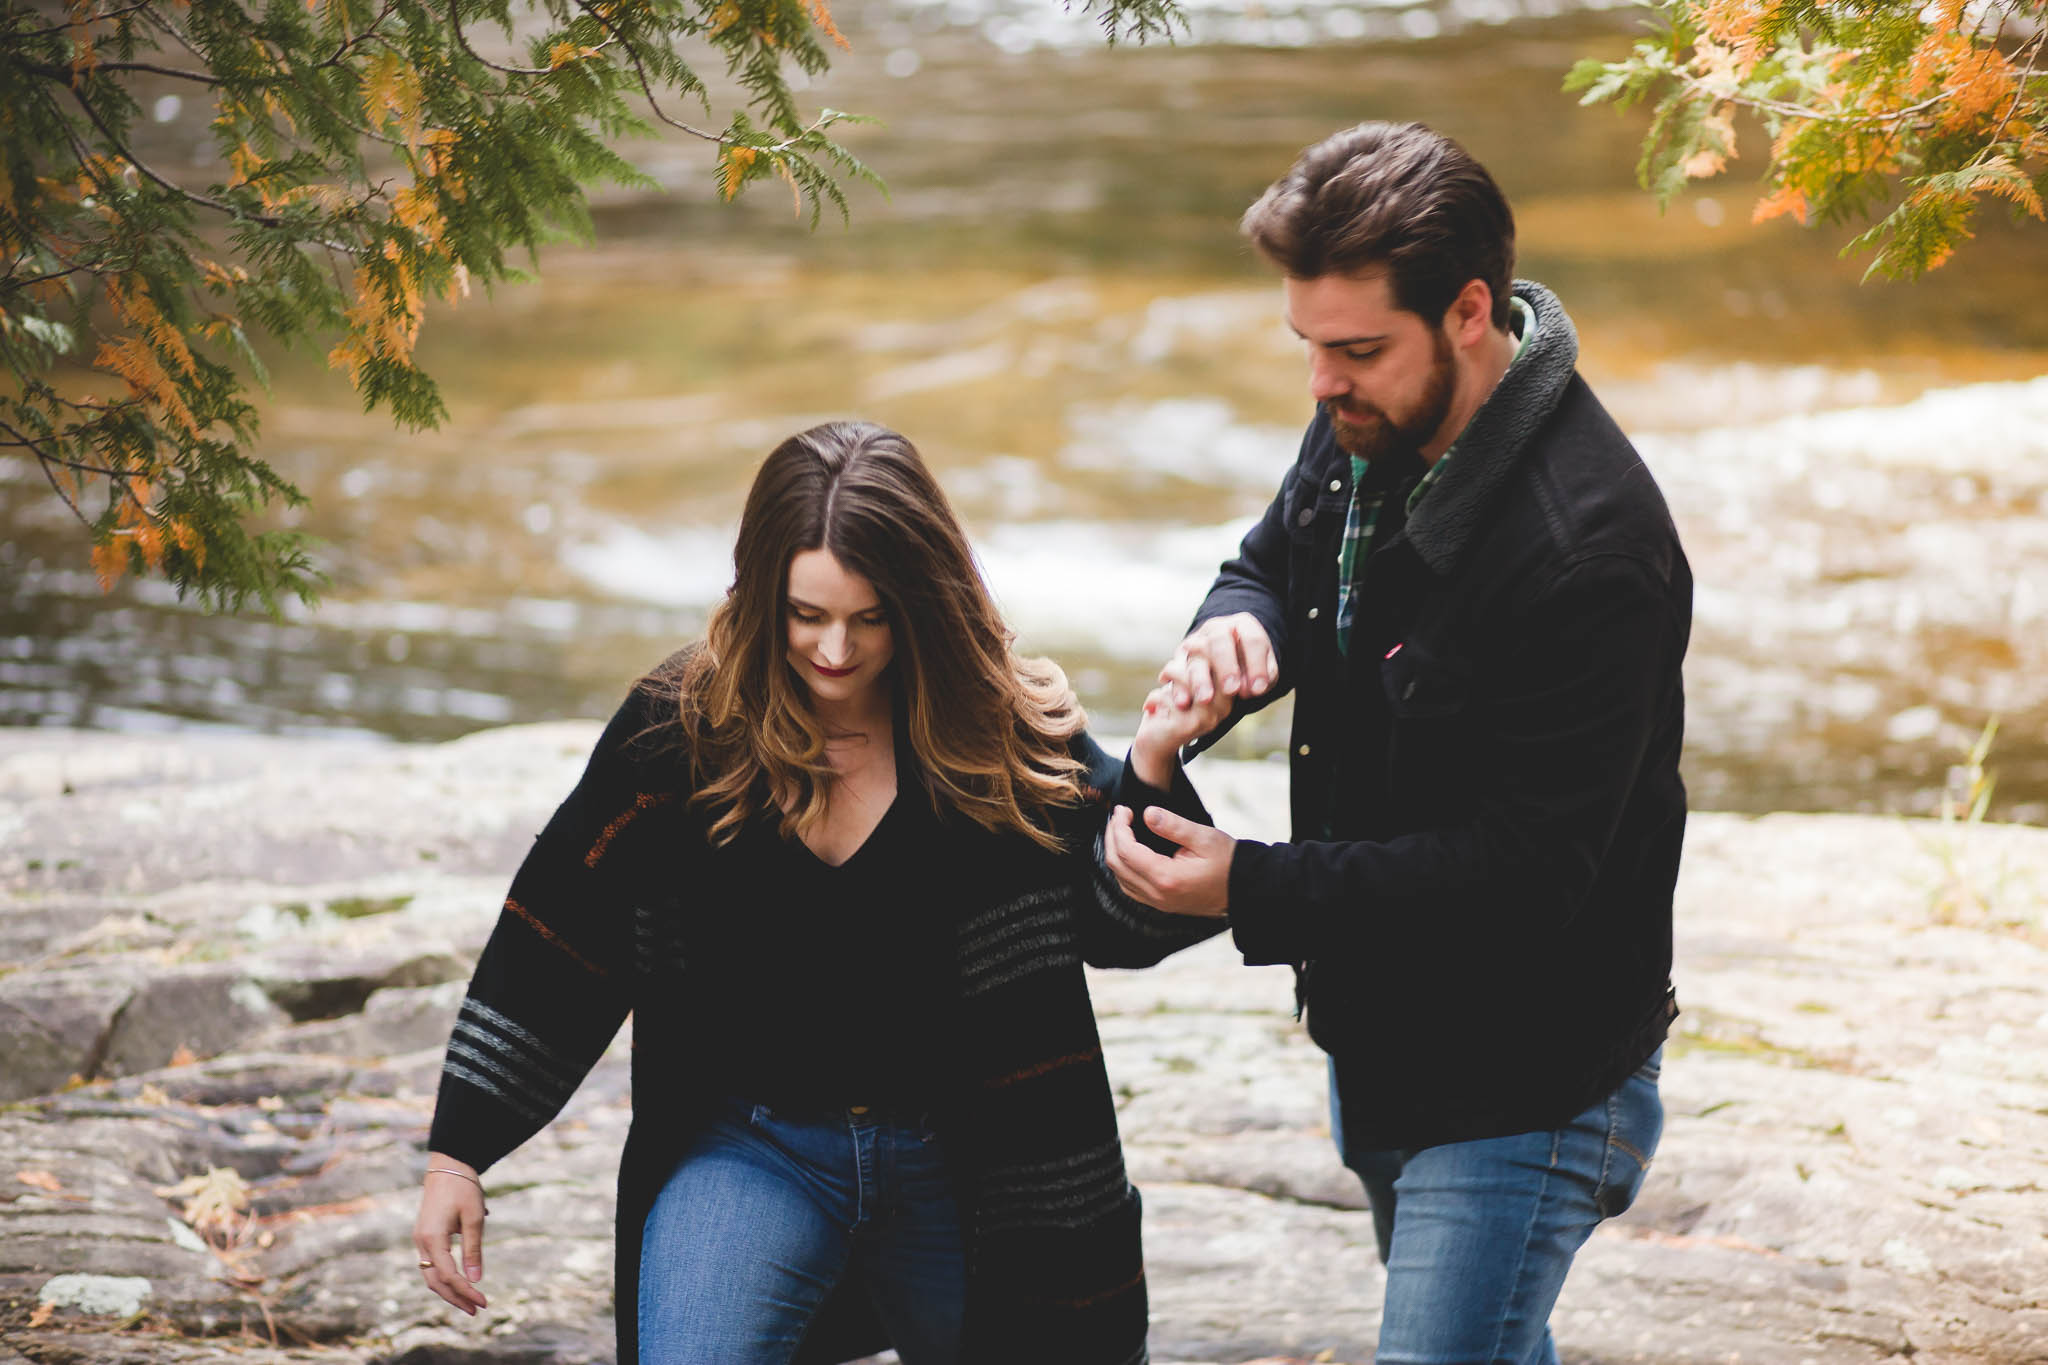 Amy D Photography- Fall Engagement Session- Fall Wedding- Engagement Session Poses- Engagement Poses- Wedding Photography Barrie-Fall Engagement  (39 of 90).jpg